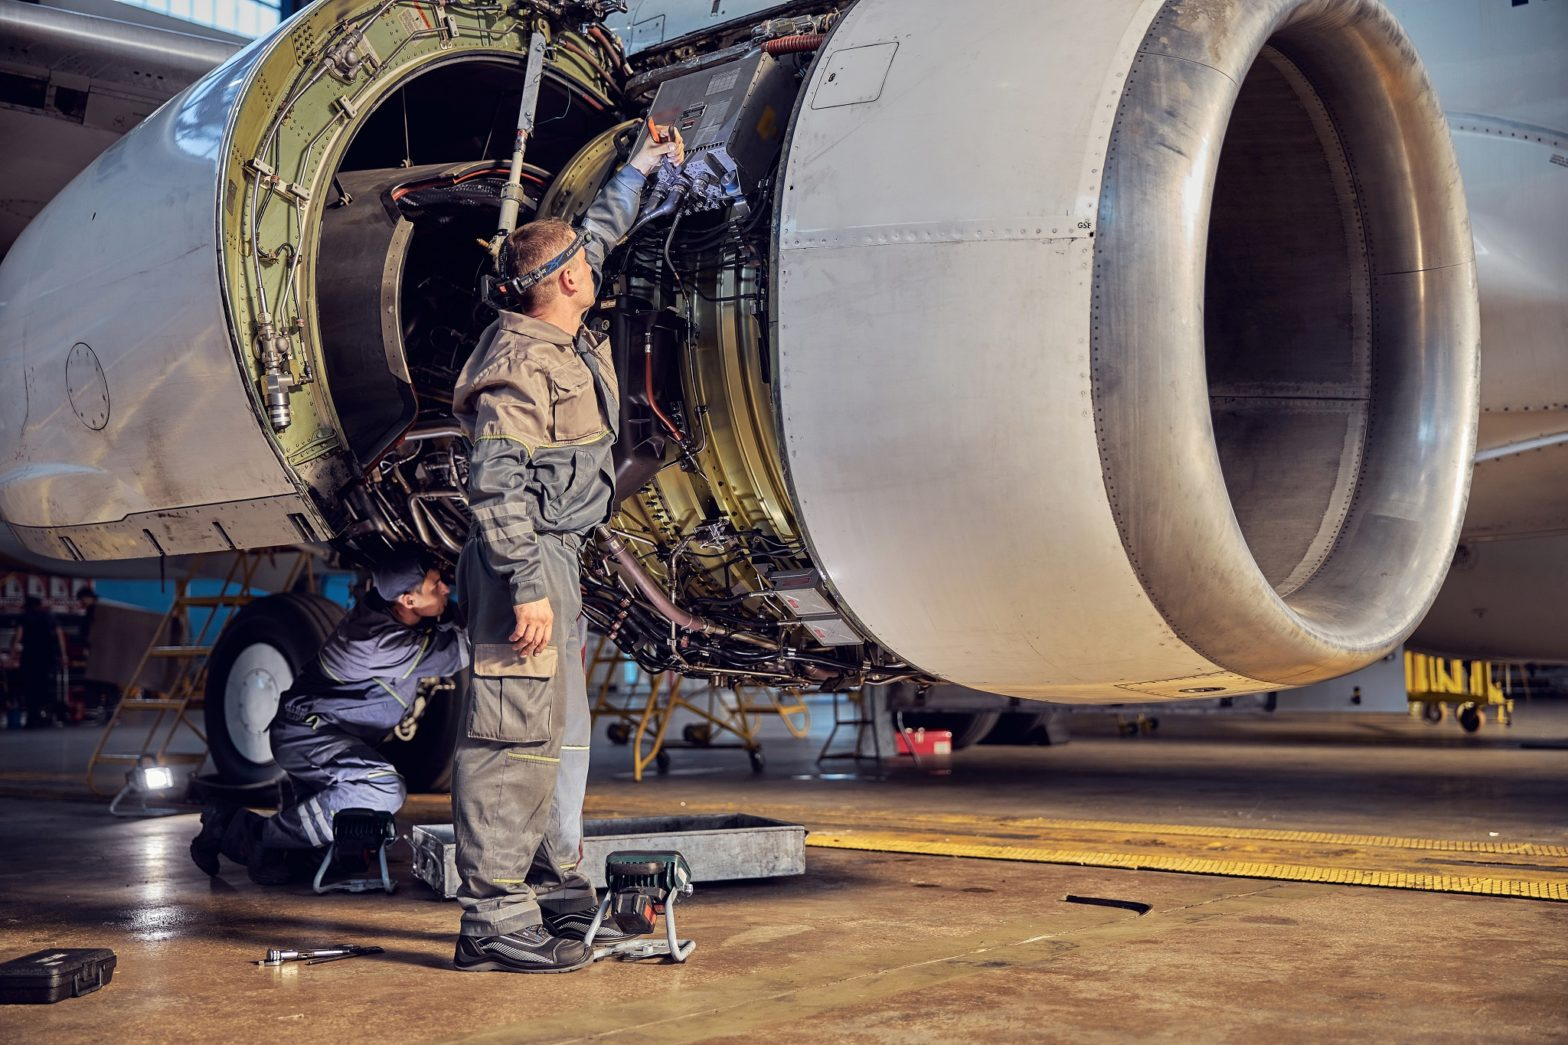 Full length portrait of 2 technicians who are repairing aircraft in the aviation hangar